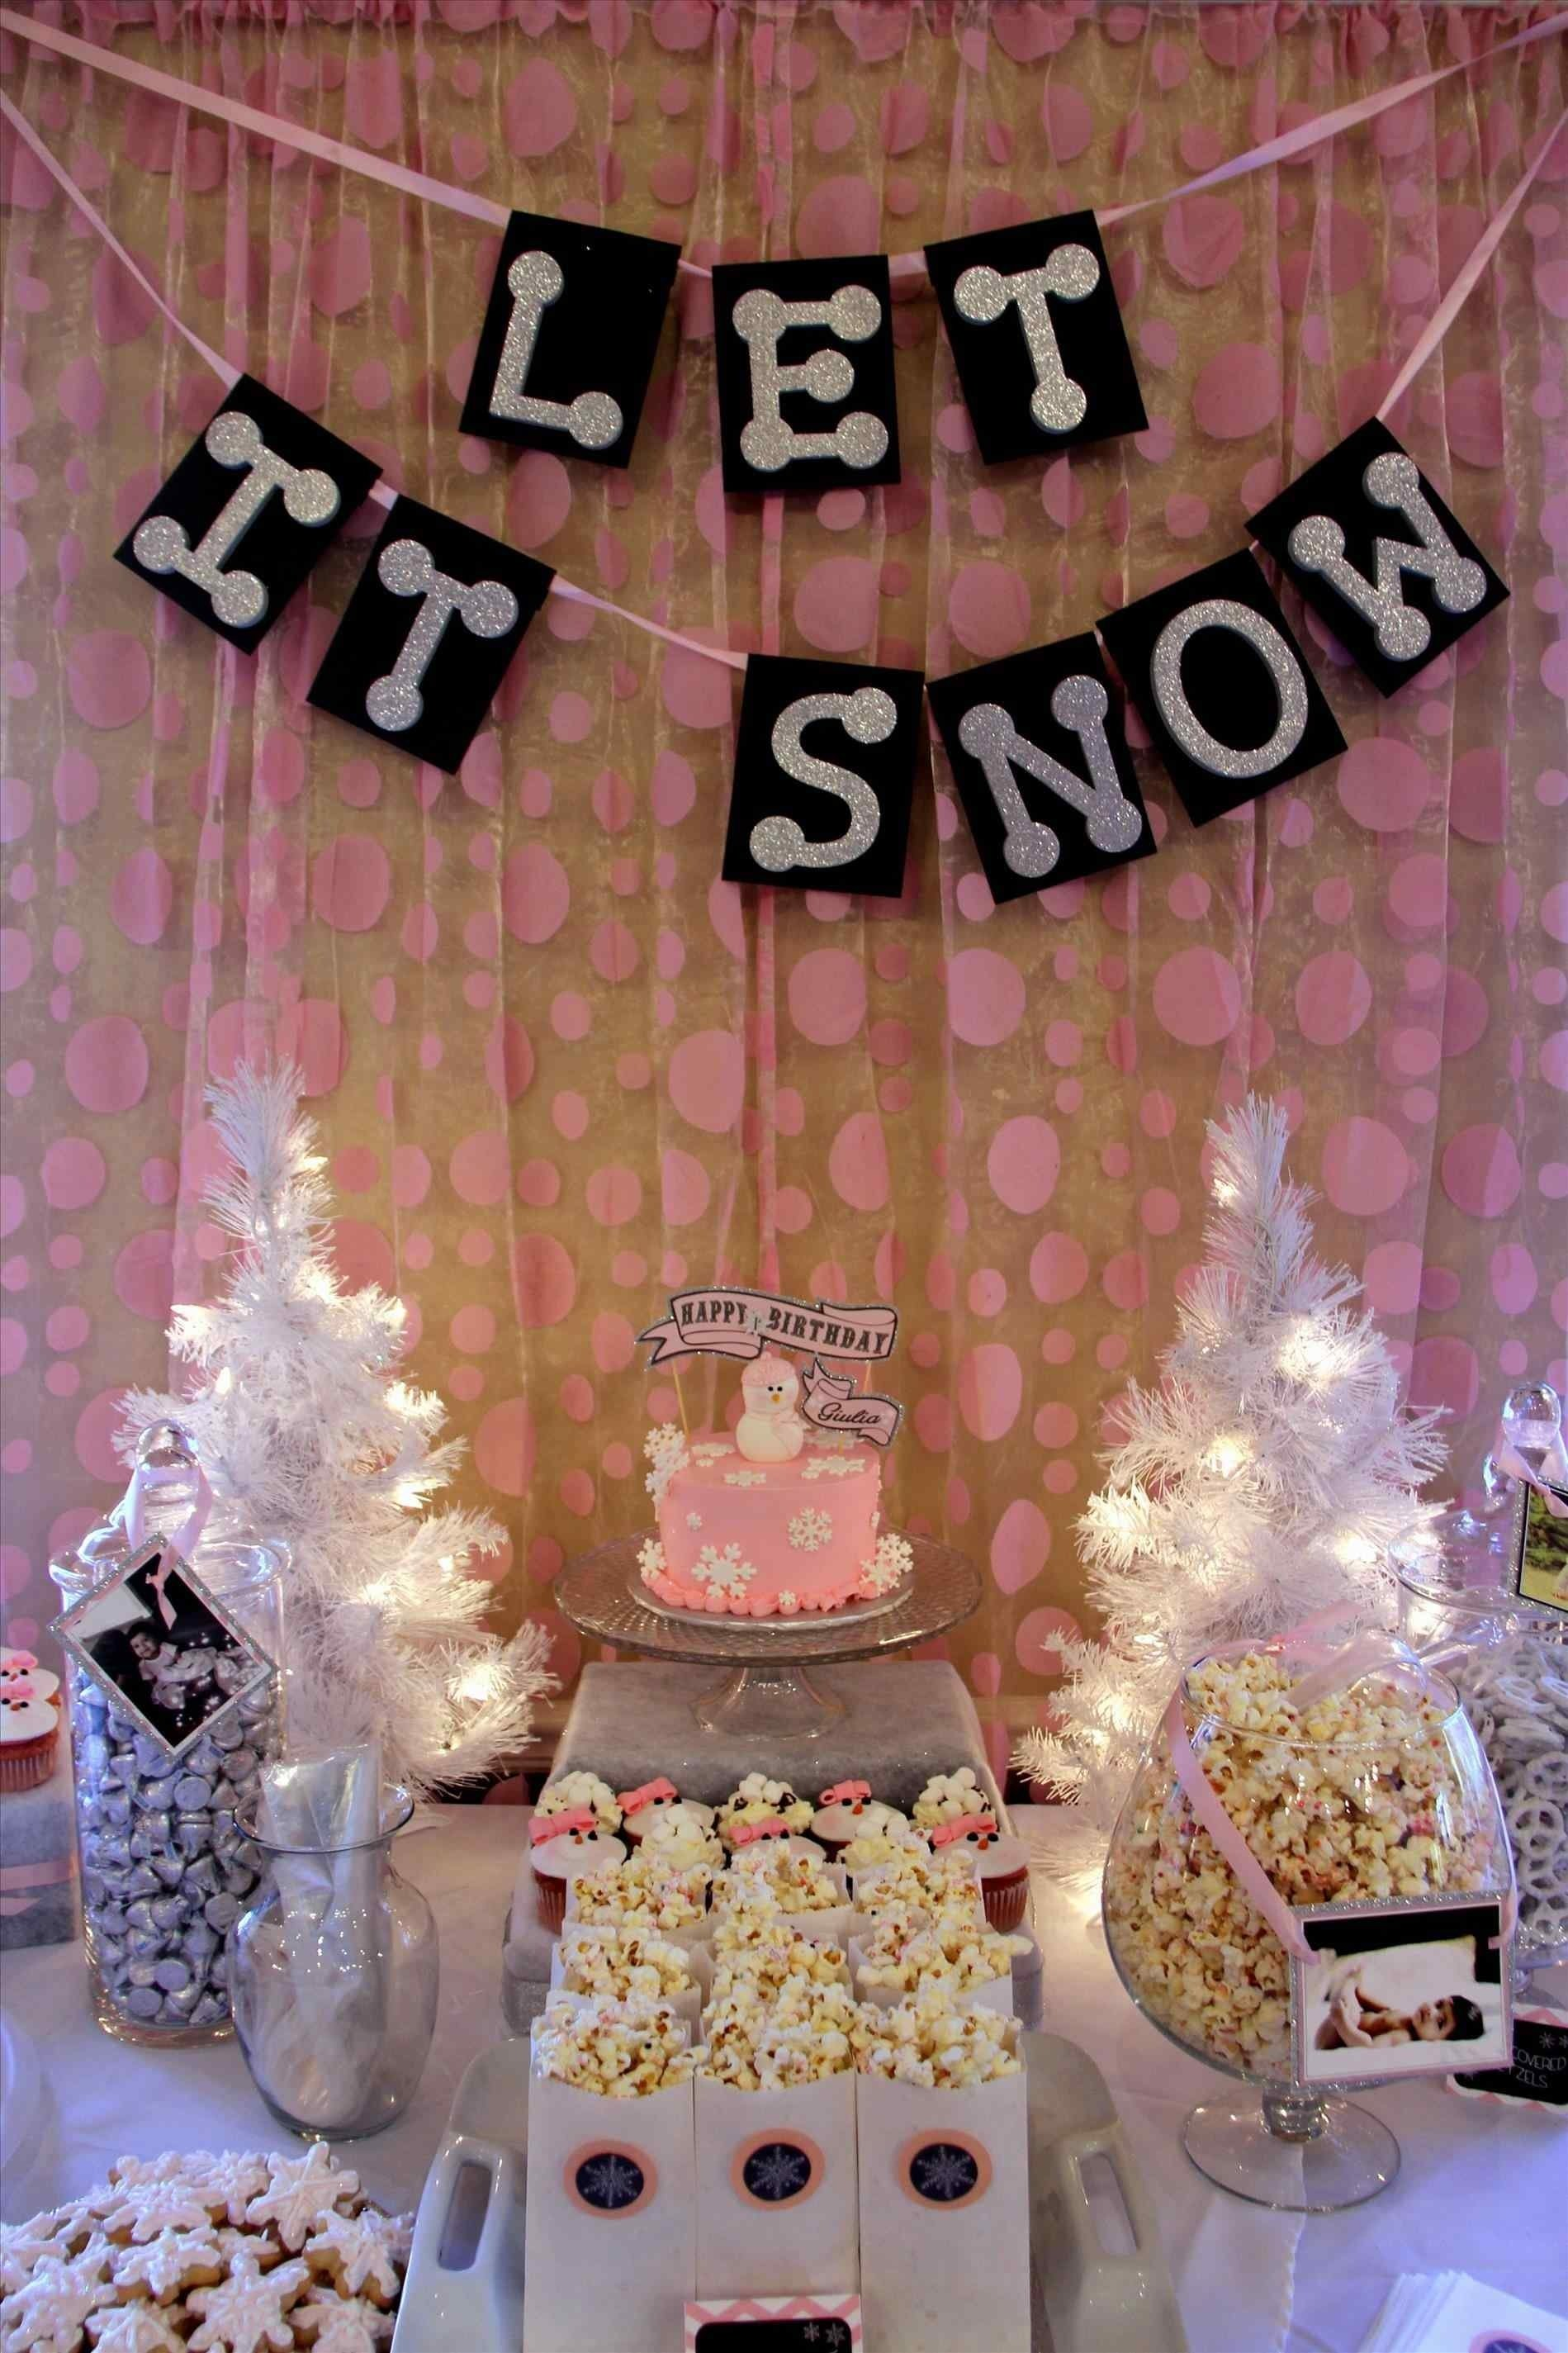 10 Gorgeous Winter Birthday Party Ideas For Adults ice age on pinterest dino eggs unique winter party ideas for adults